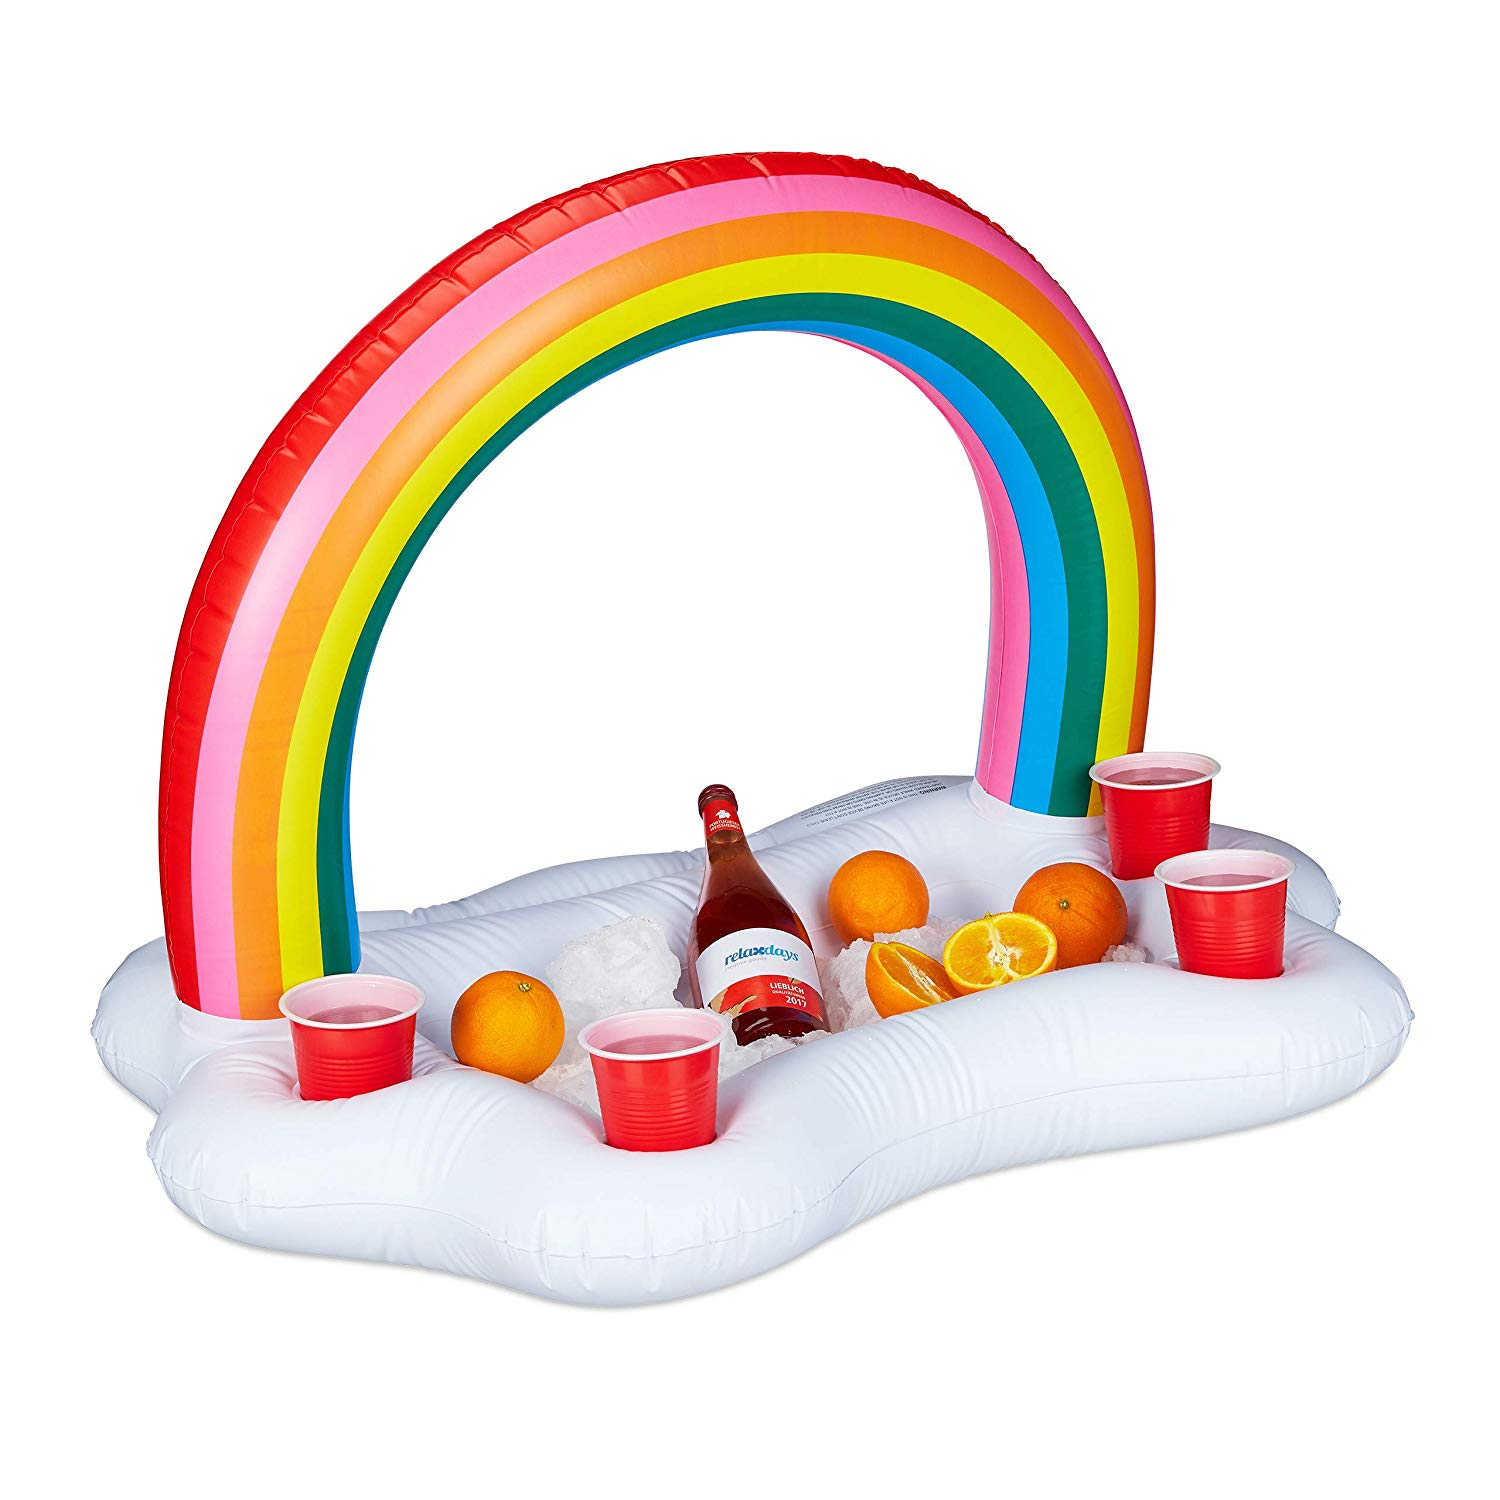 Relaxdays Cute Pool Drink Holder Float, Inflatable Rainbow-Cloud, 4x Beer Holder, Pool Party Decoration, 66 cm, White/Colourful